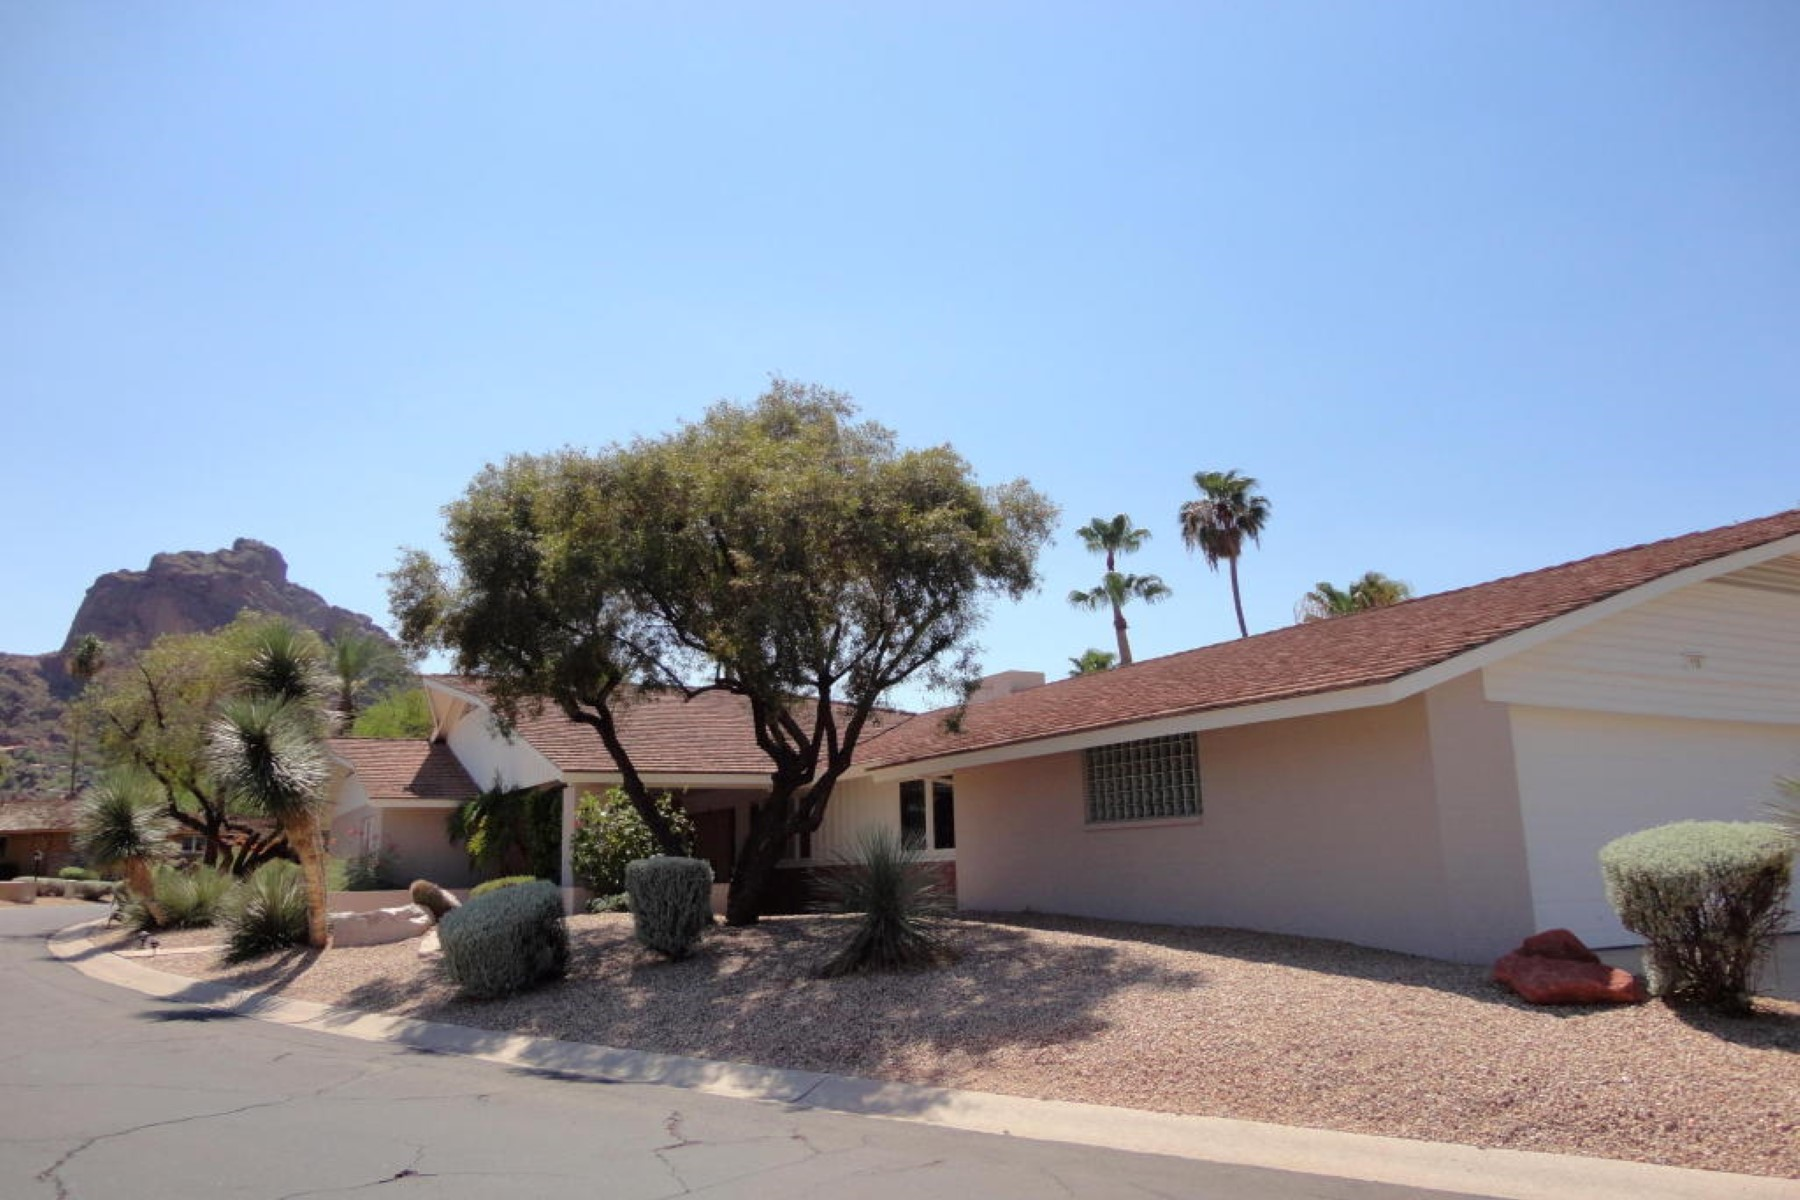 Single Family Home for Sale at Fantastic location right in the heart of Paradise Valley. 5525 E LINCOLN DR 116 Paradise Valley, Arizona 85253 United States